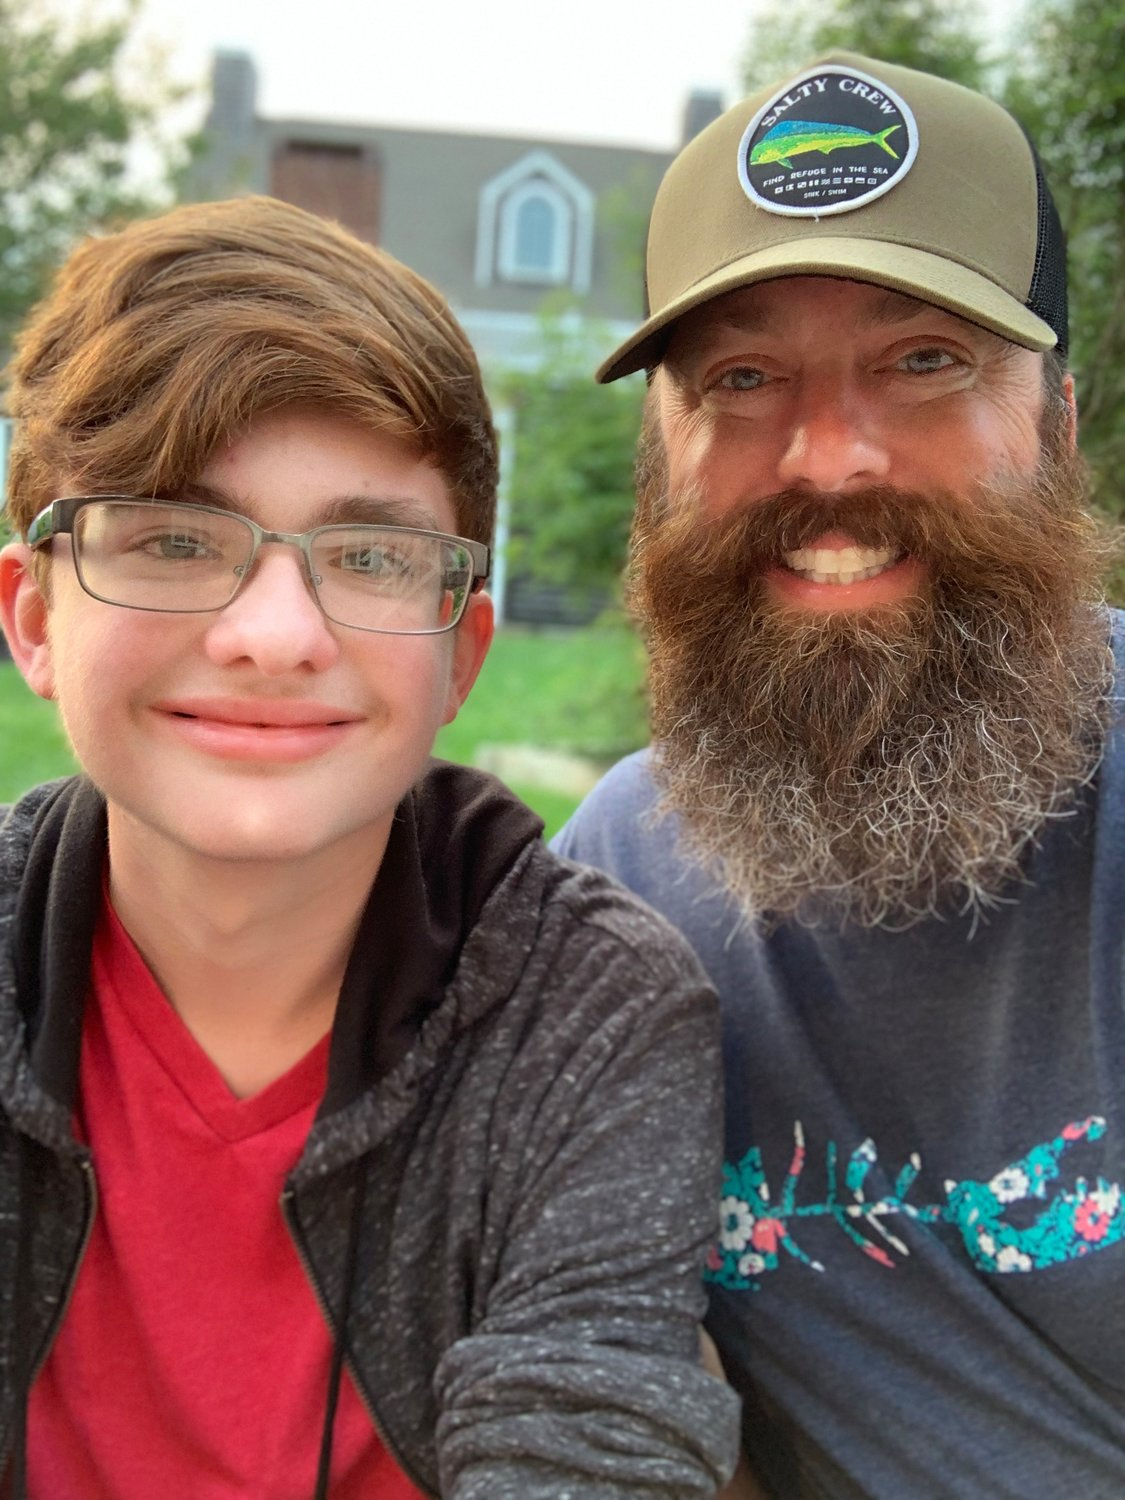 Still able to take fun selfies despite being an in-demand photographer, Ryan is pictured here with his supportive father, Craig.